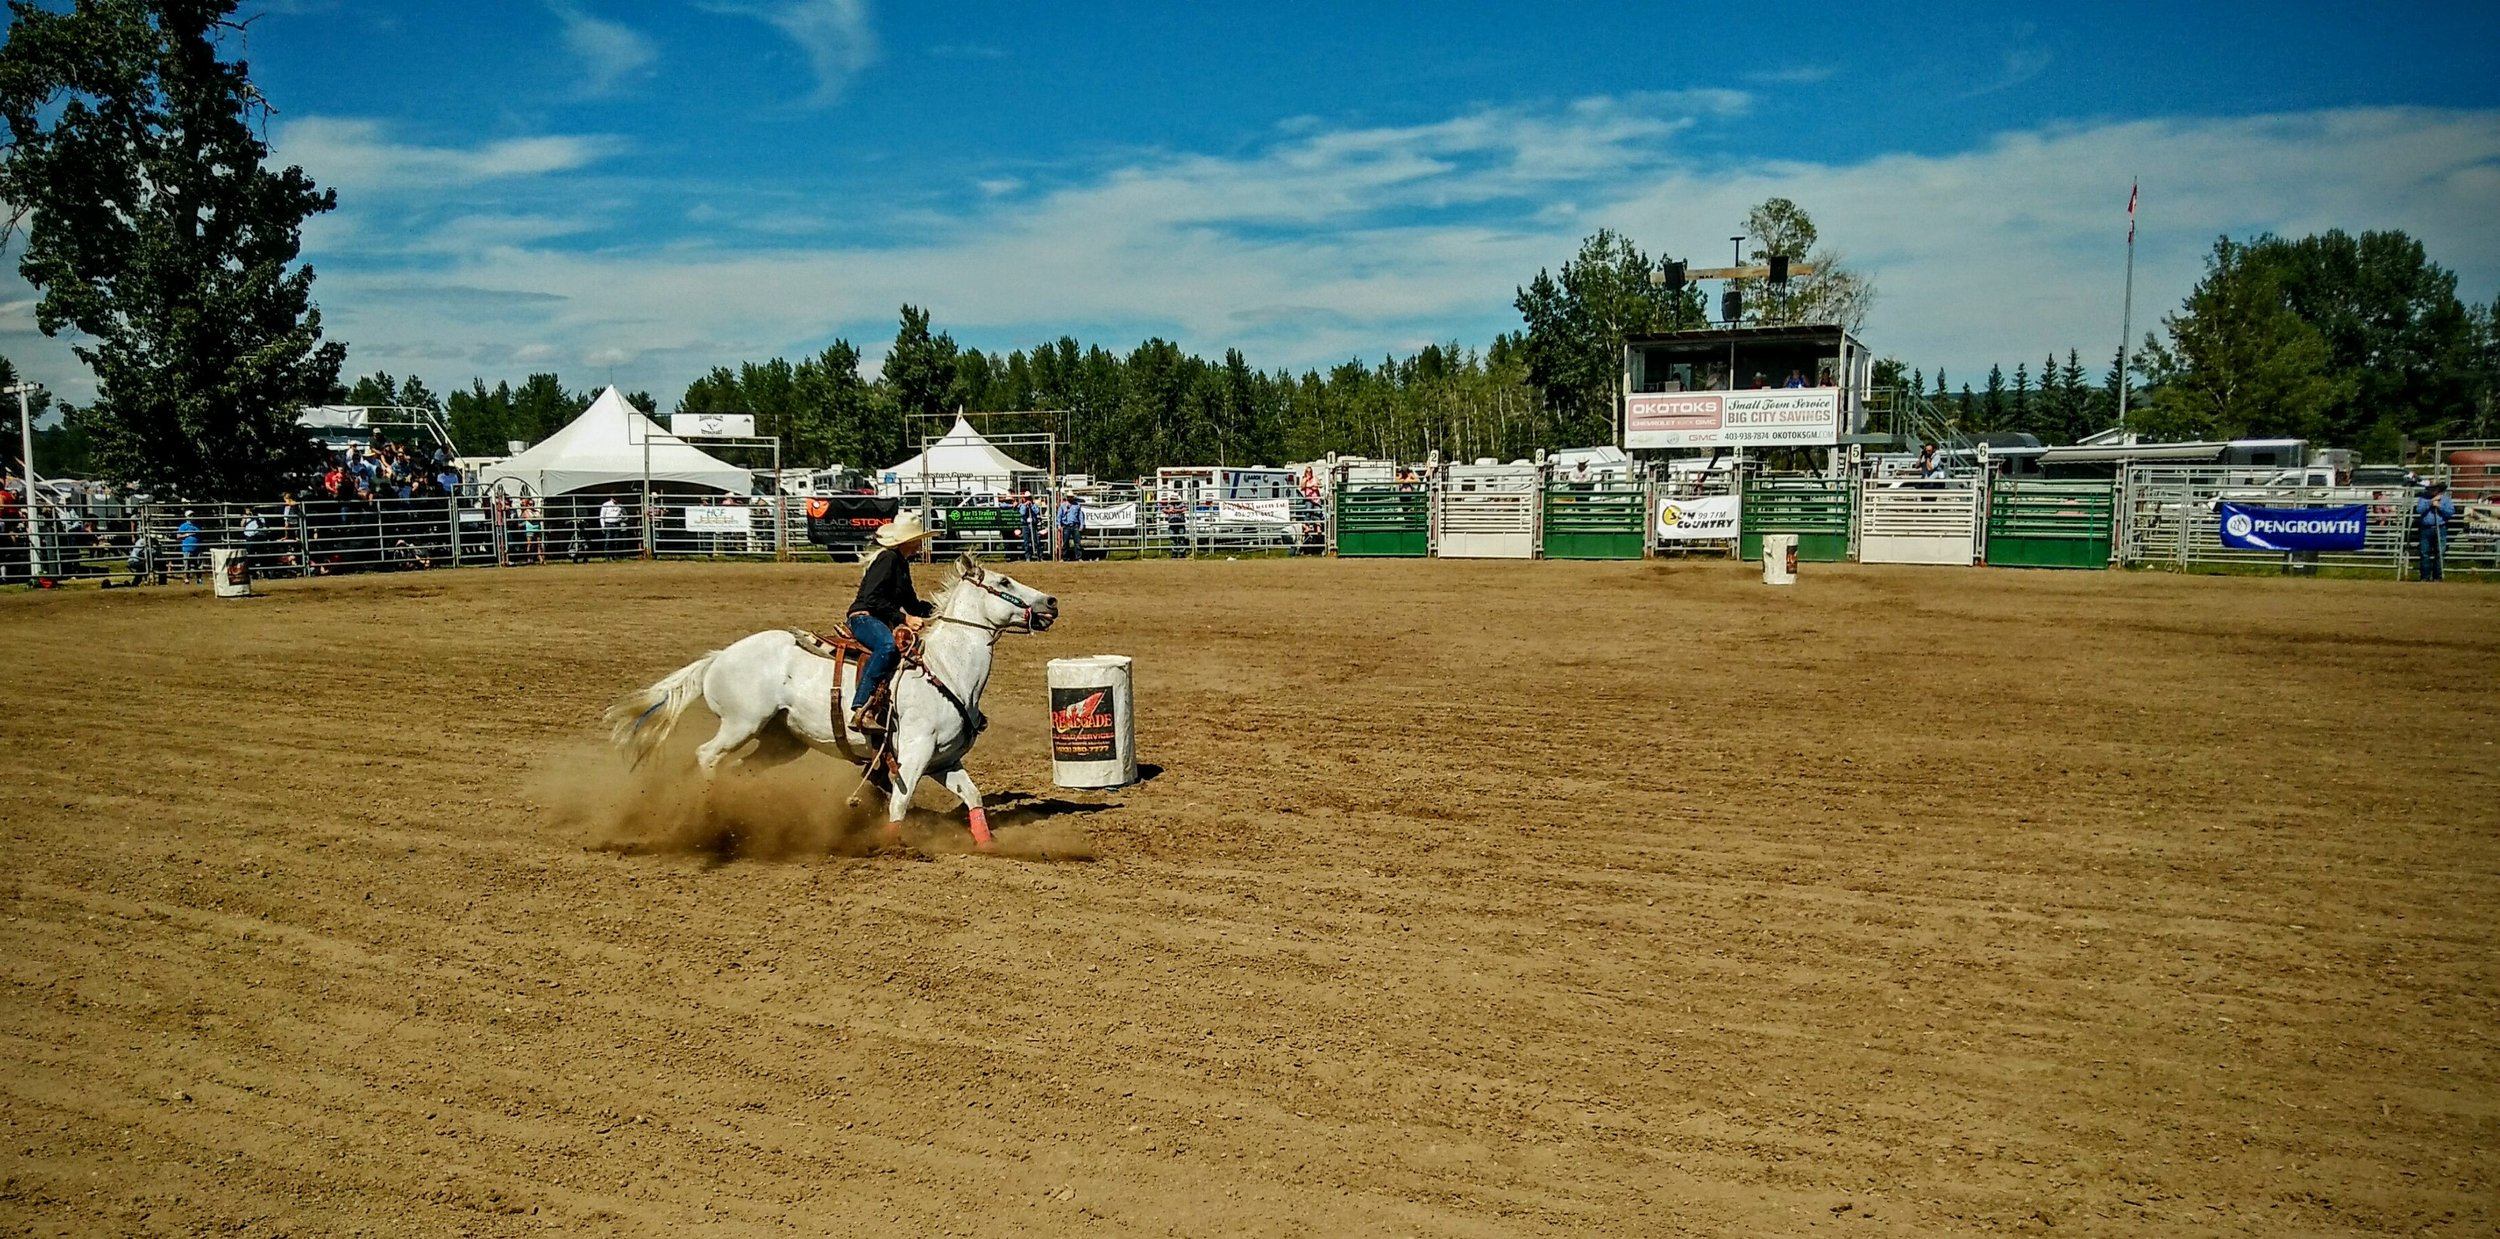 A more intimate, more impressive view of the rodeo at Millarville.